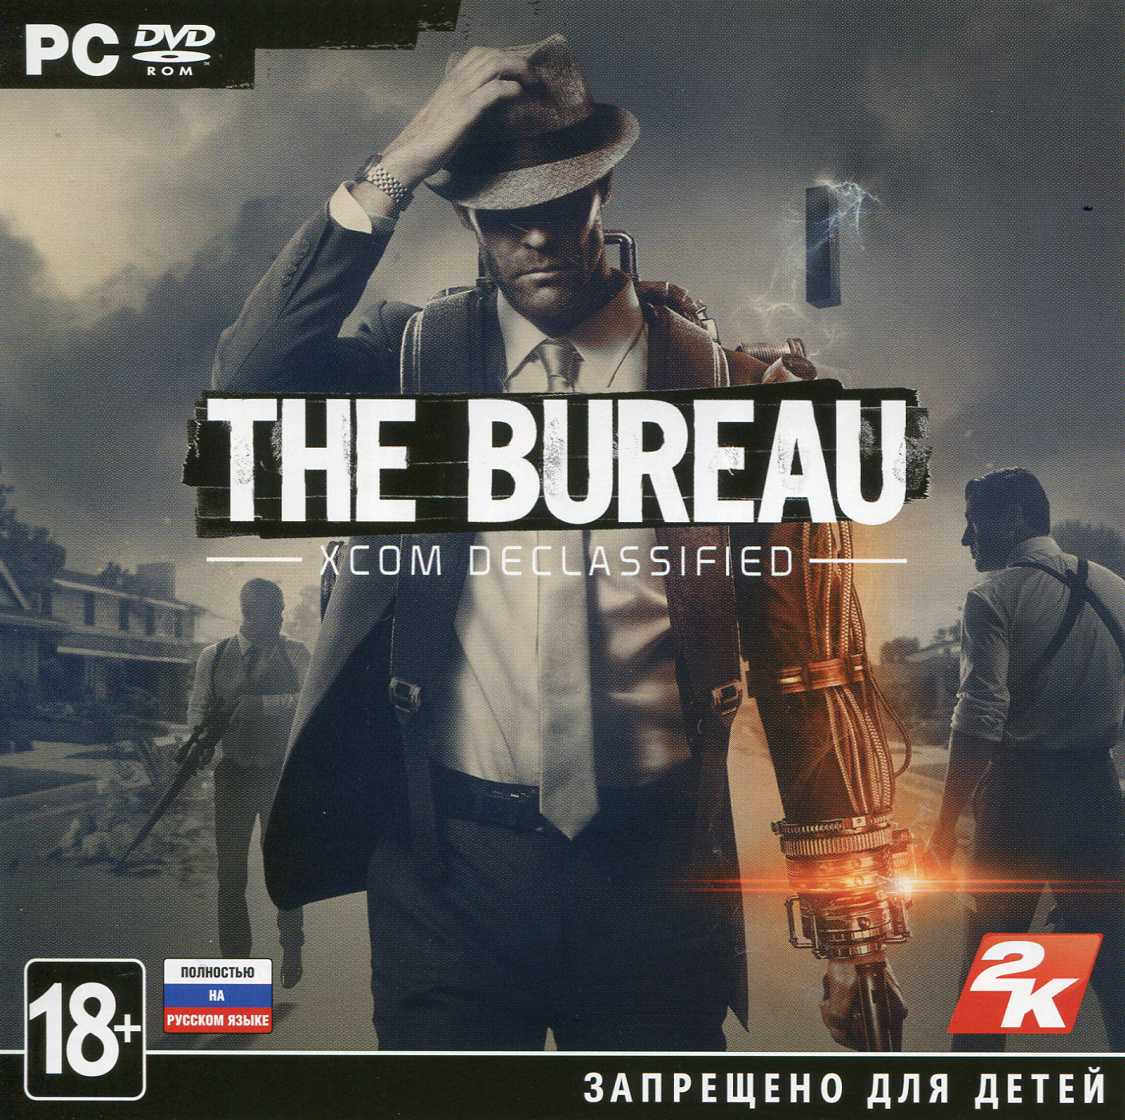 The Bureau: XCOM Declassified (Activation key in Steam)